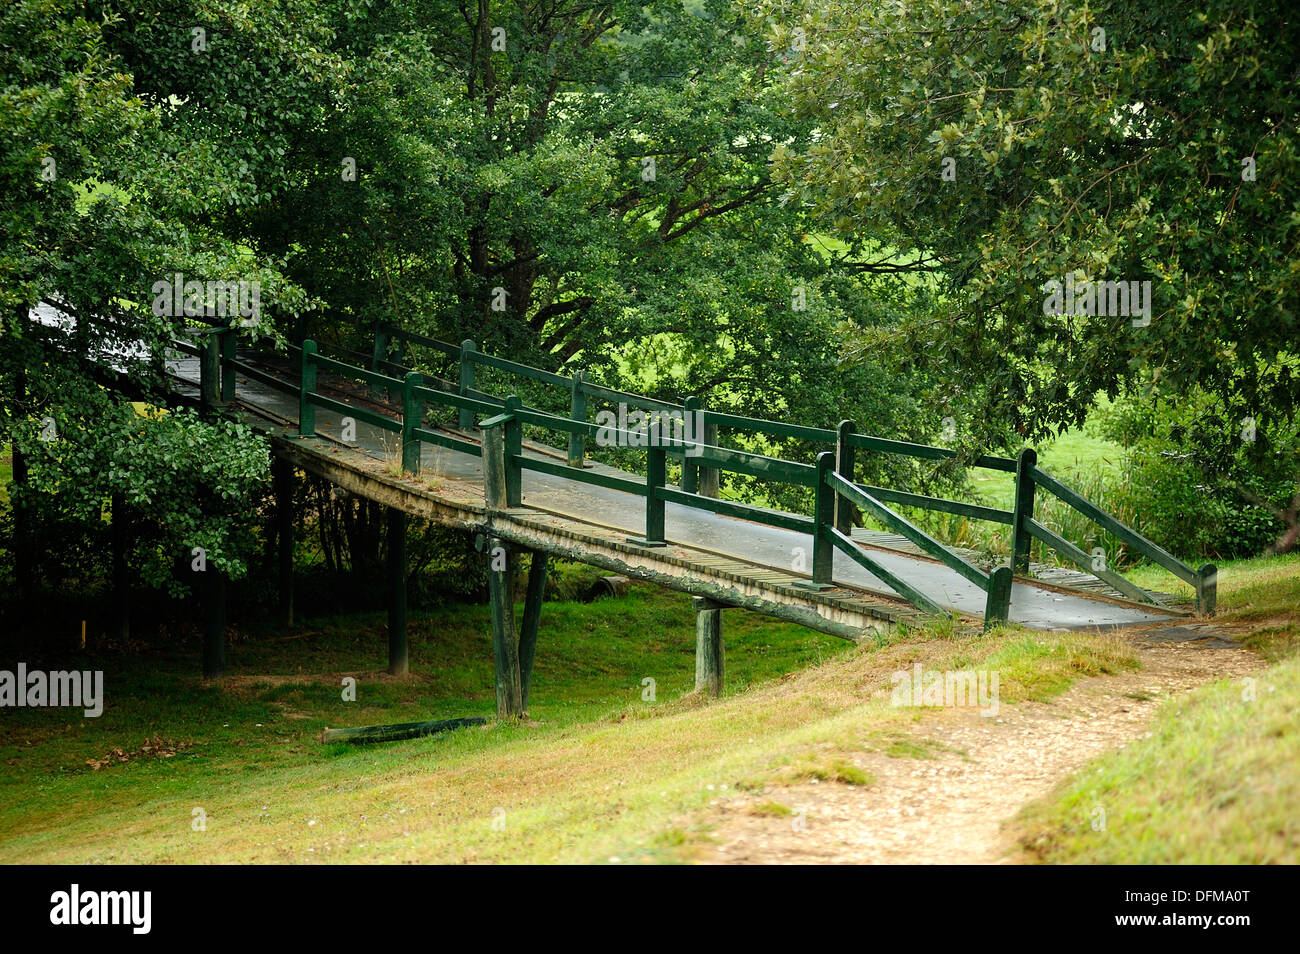 Wooden bridge in the forest at the end of a road - Stock Image